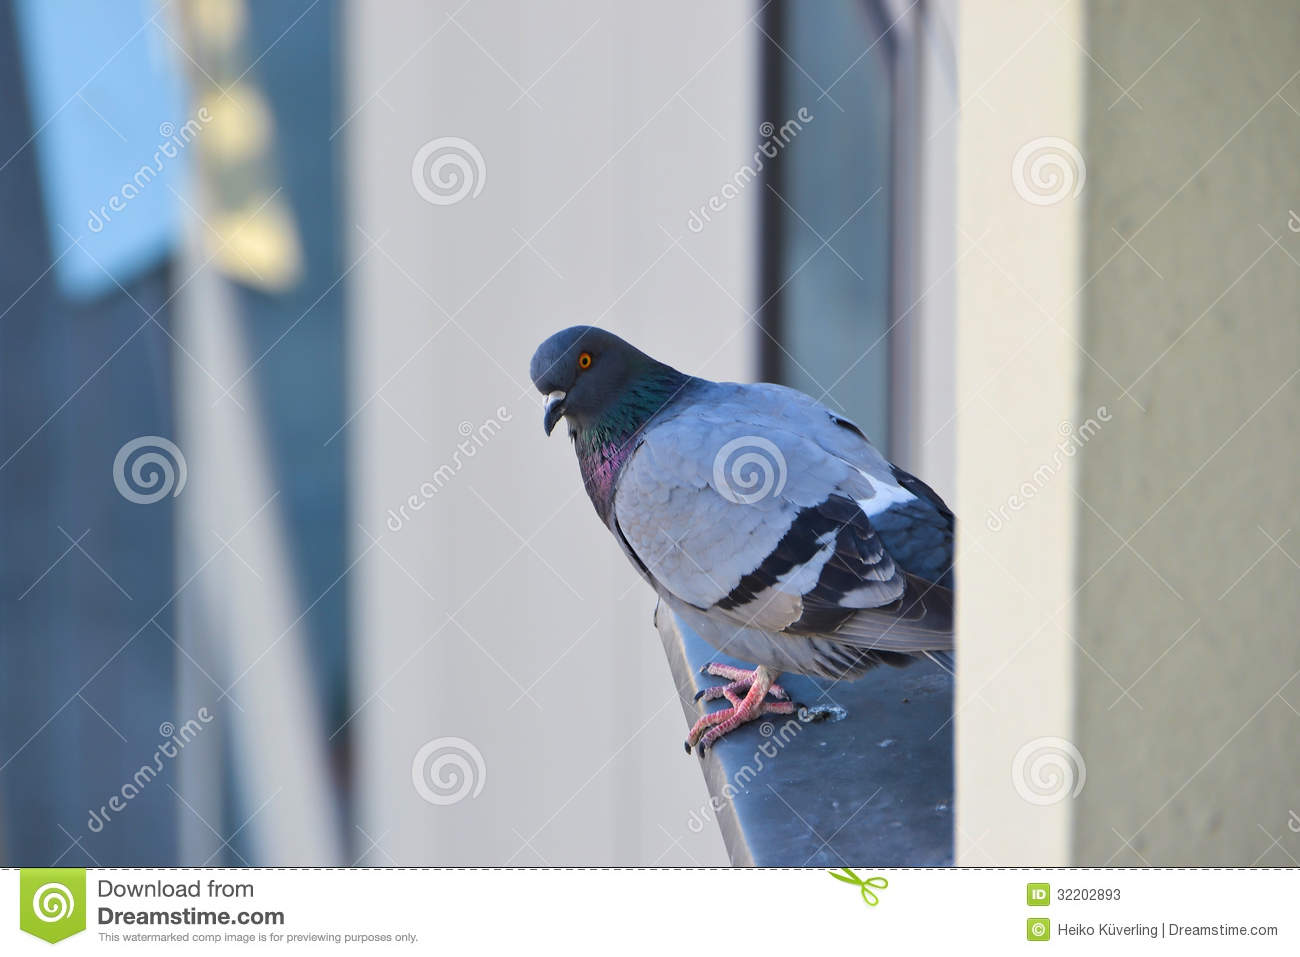 A dove sitting on a window sill stock photos image 32202893 for 2 little birds sat on my window